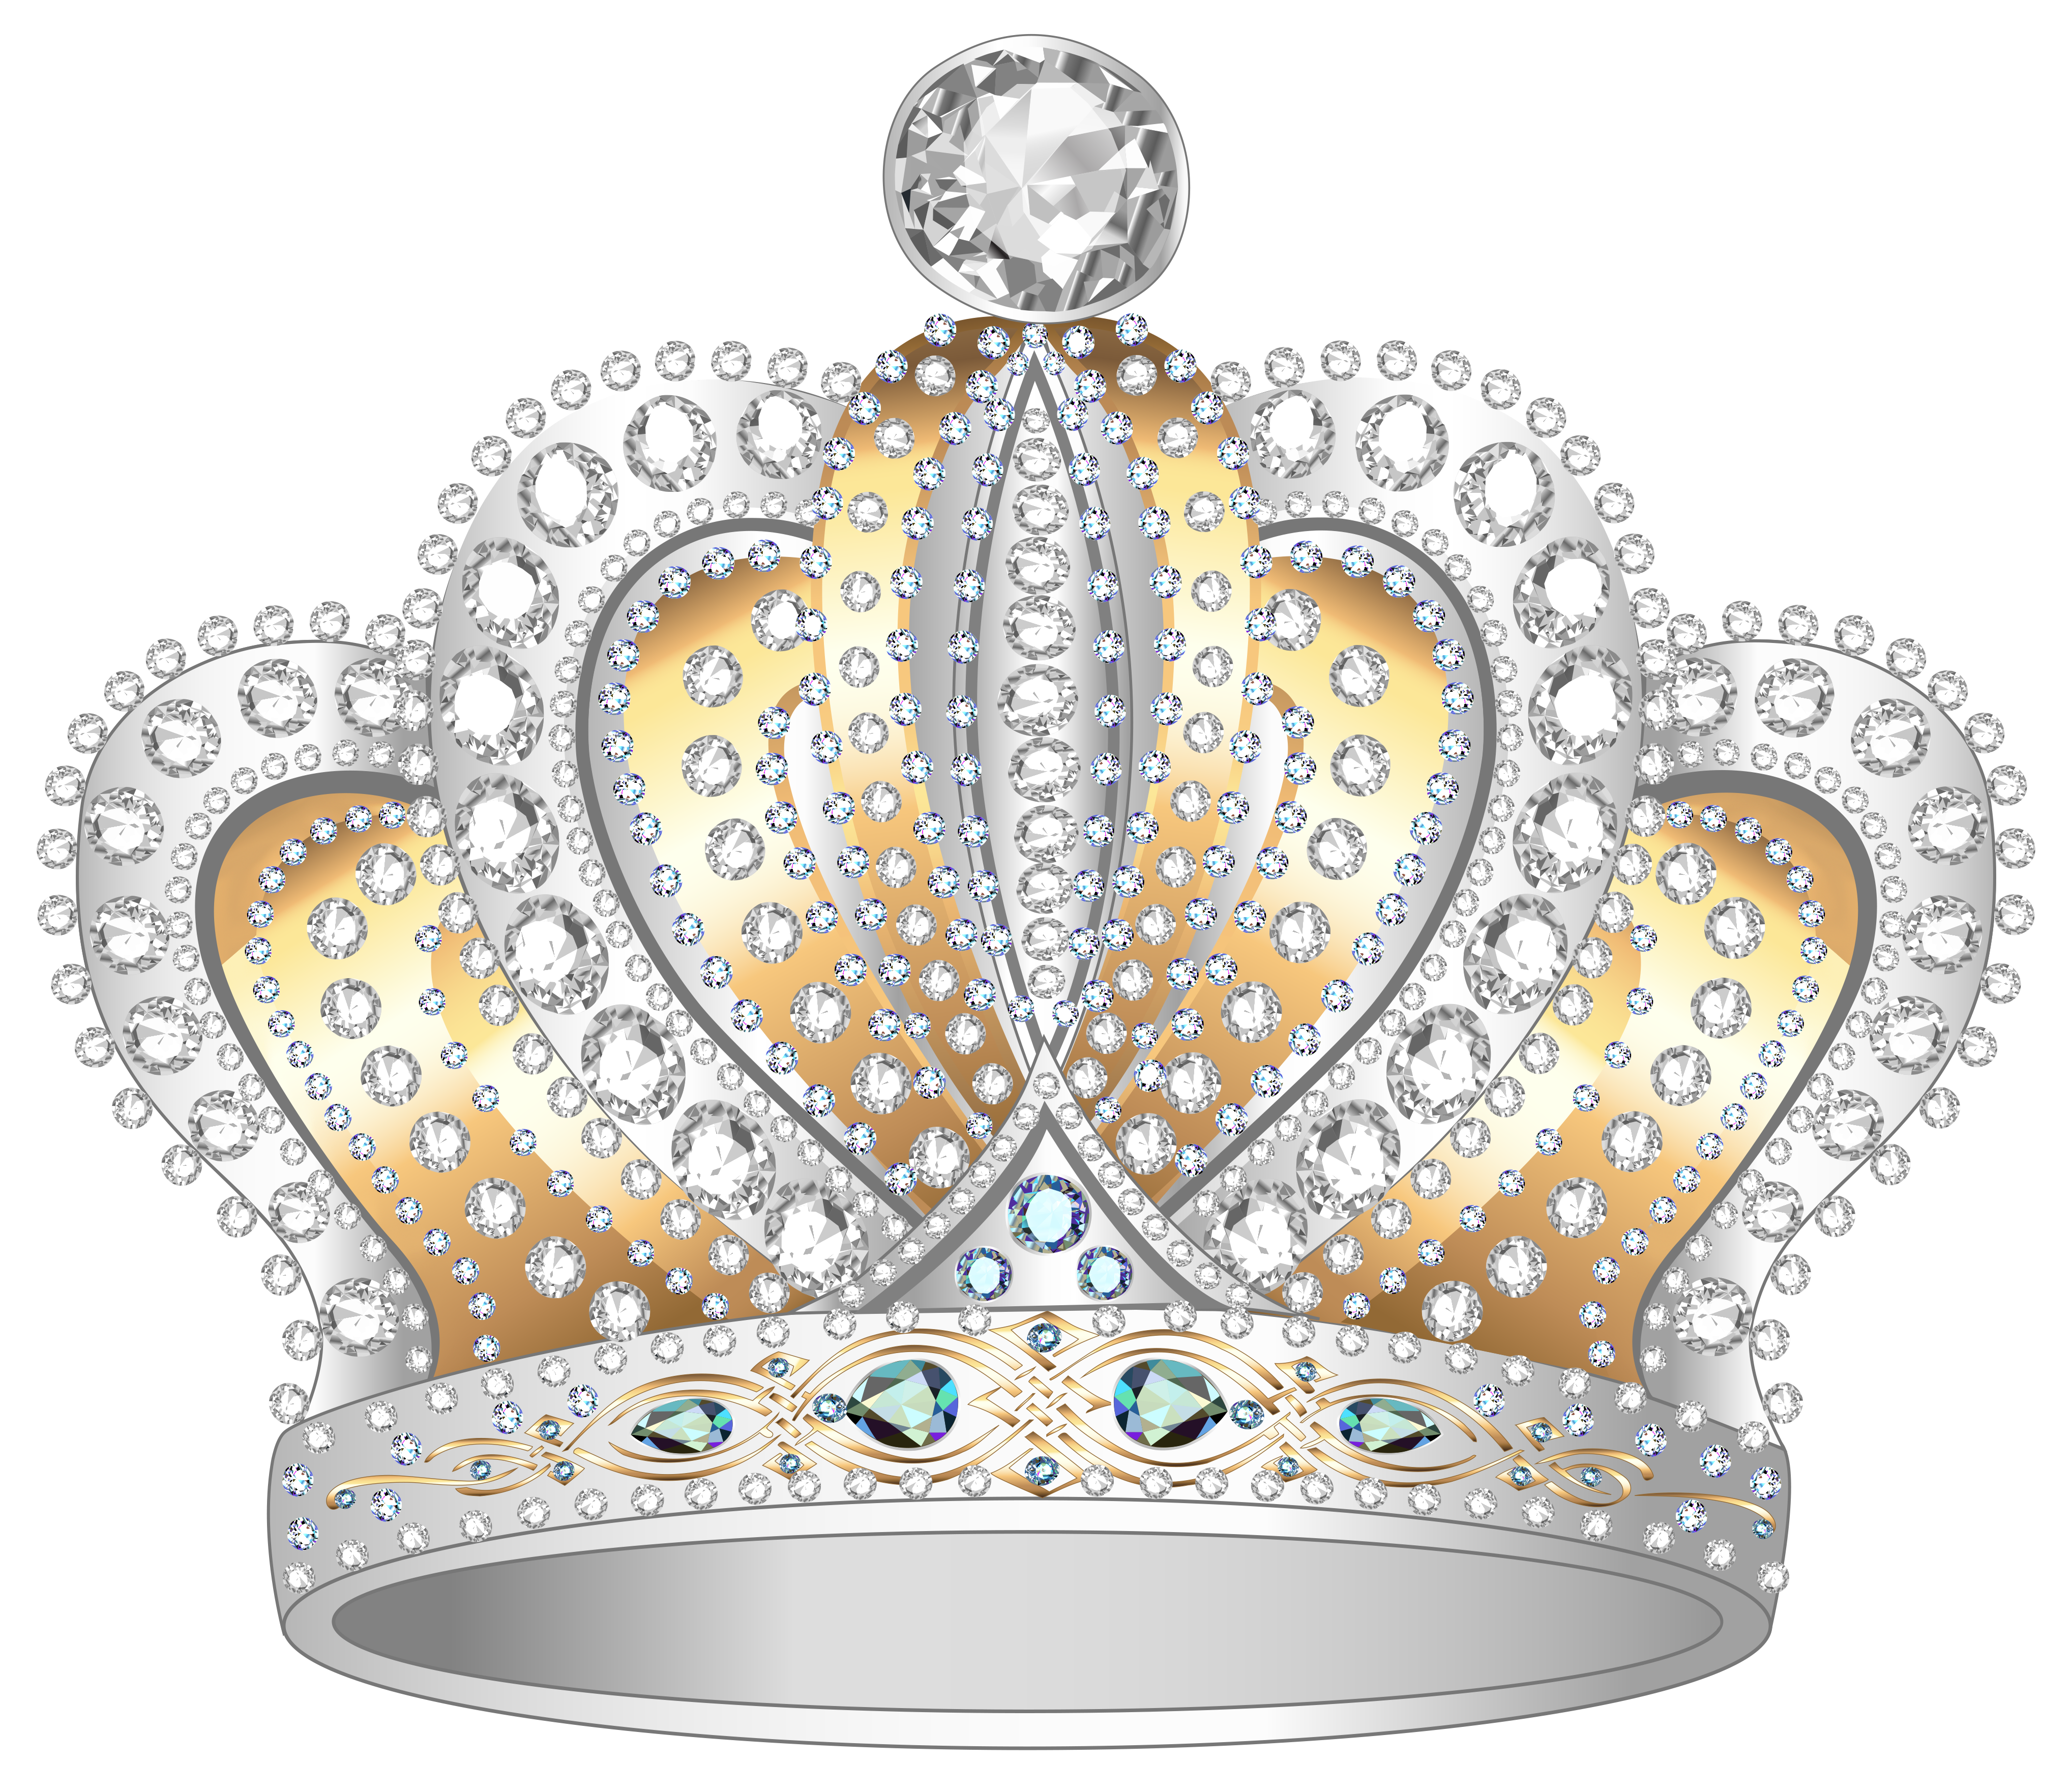 Gold crown png image. Clipart diamond silver diamond